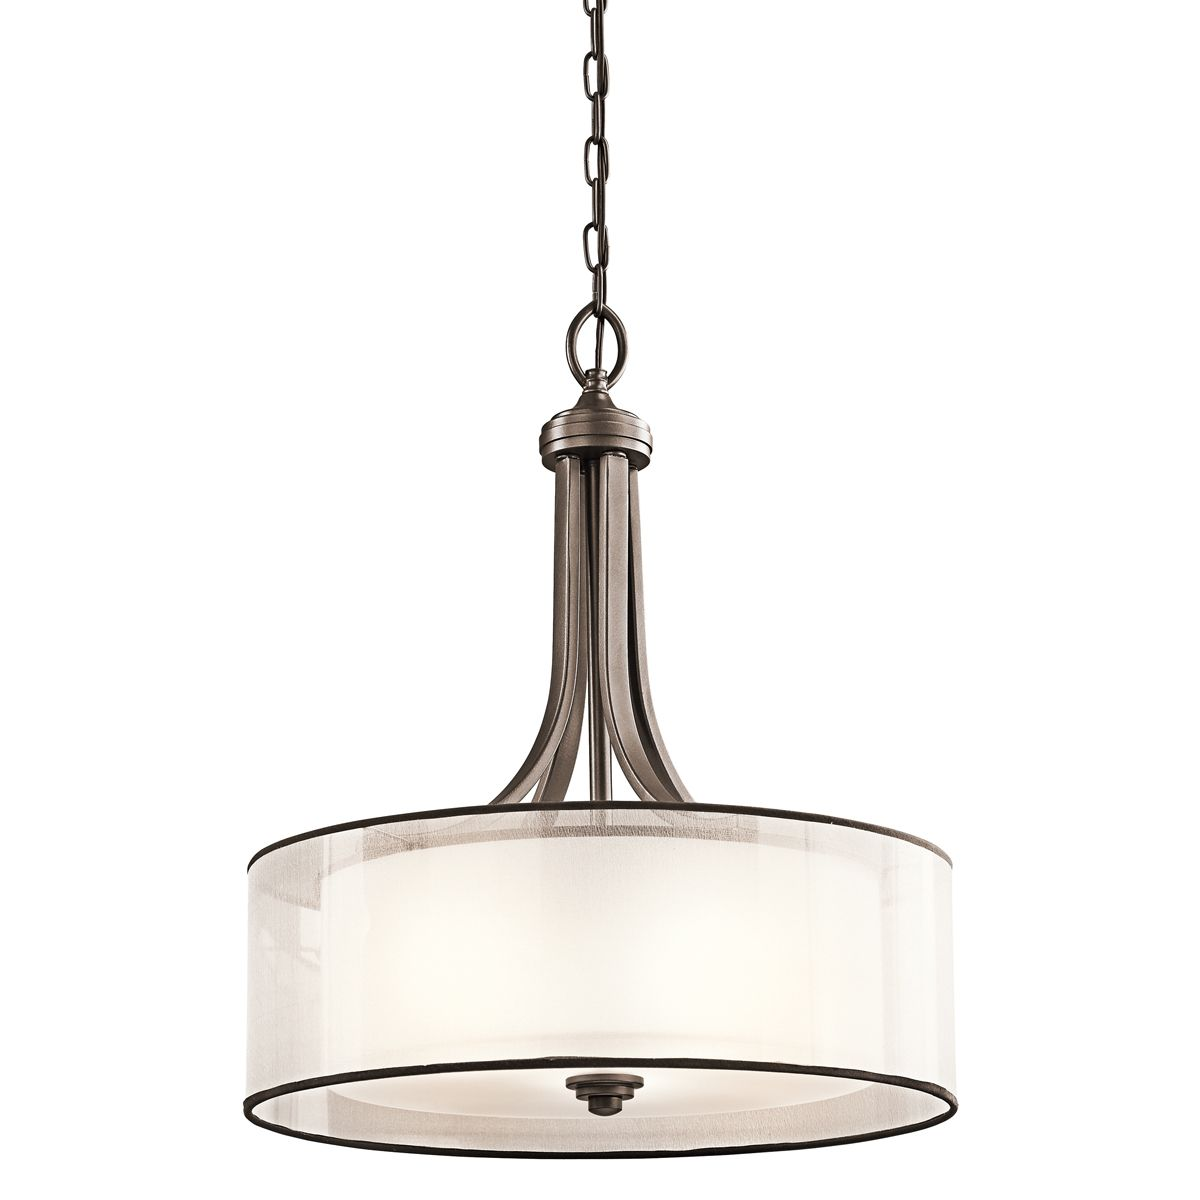 Kichler lacey 4 light inverted pendant in mission bronze